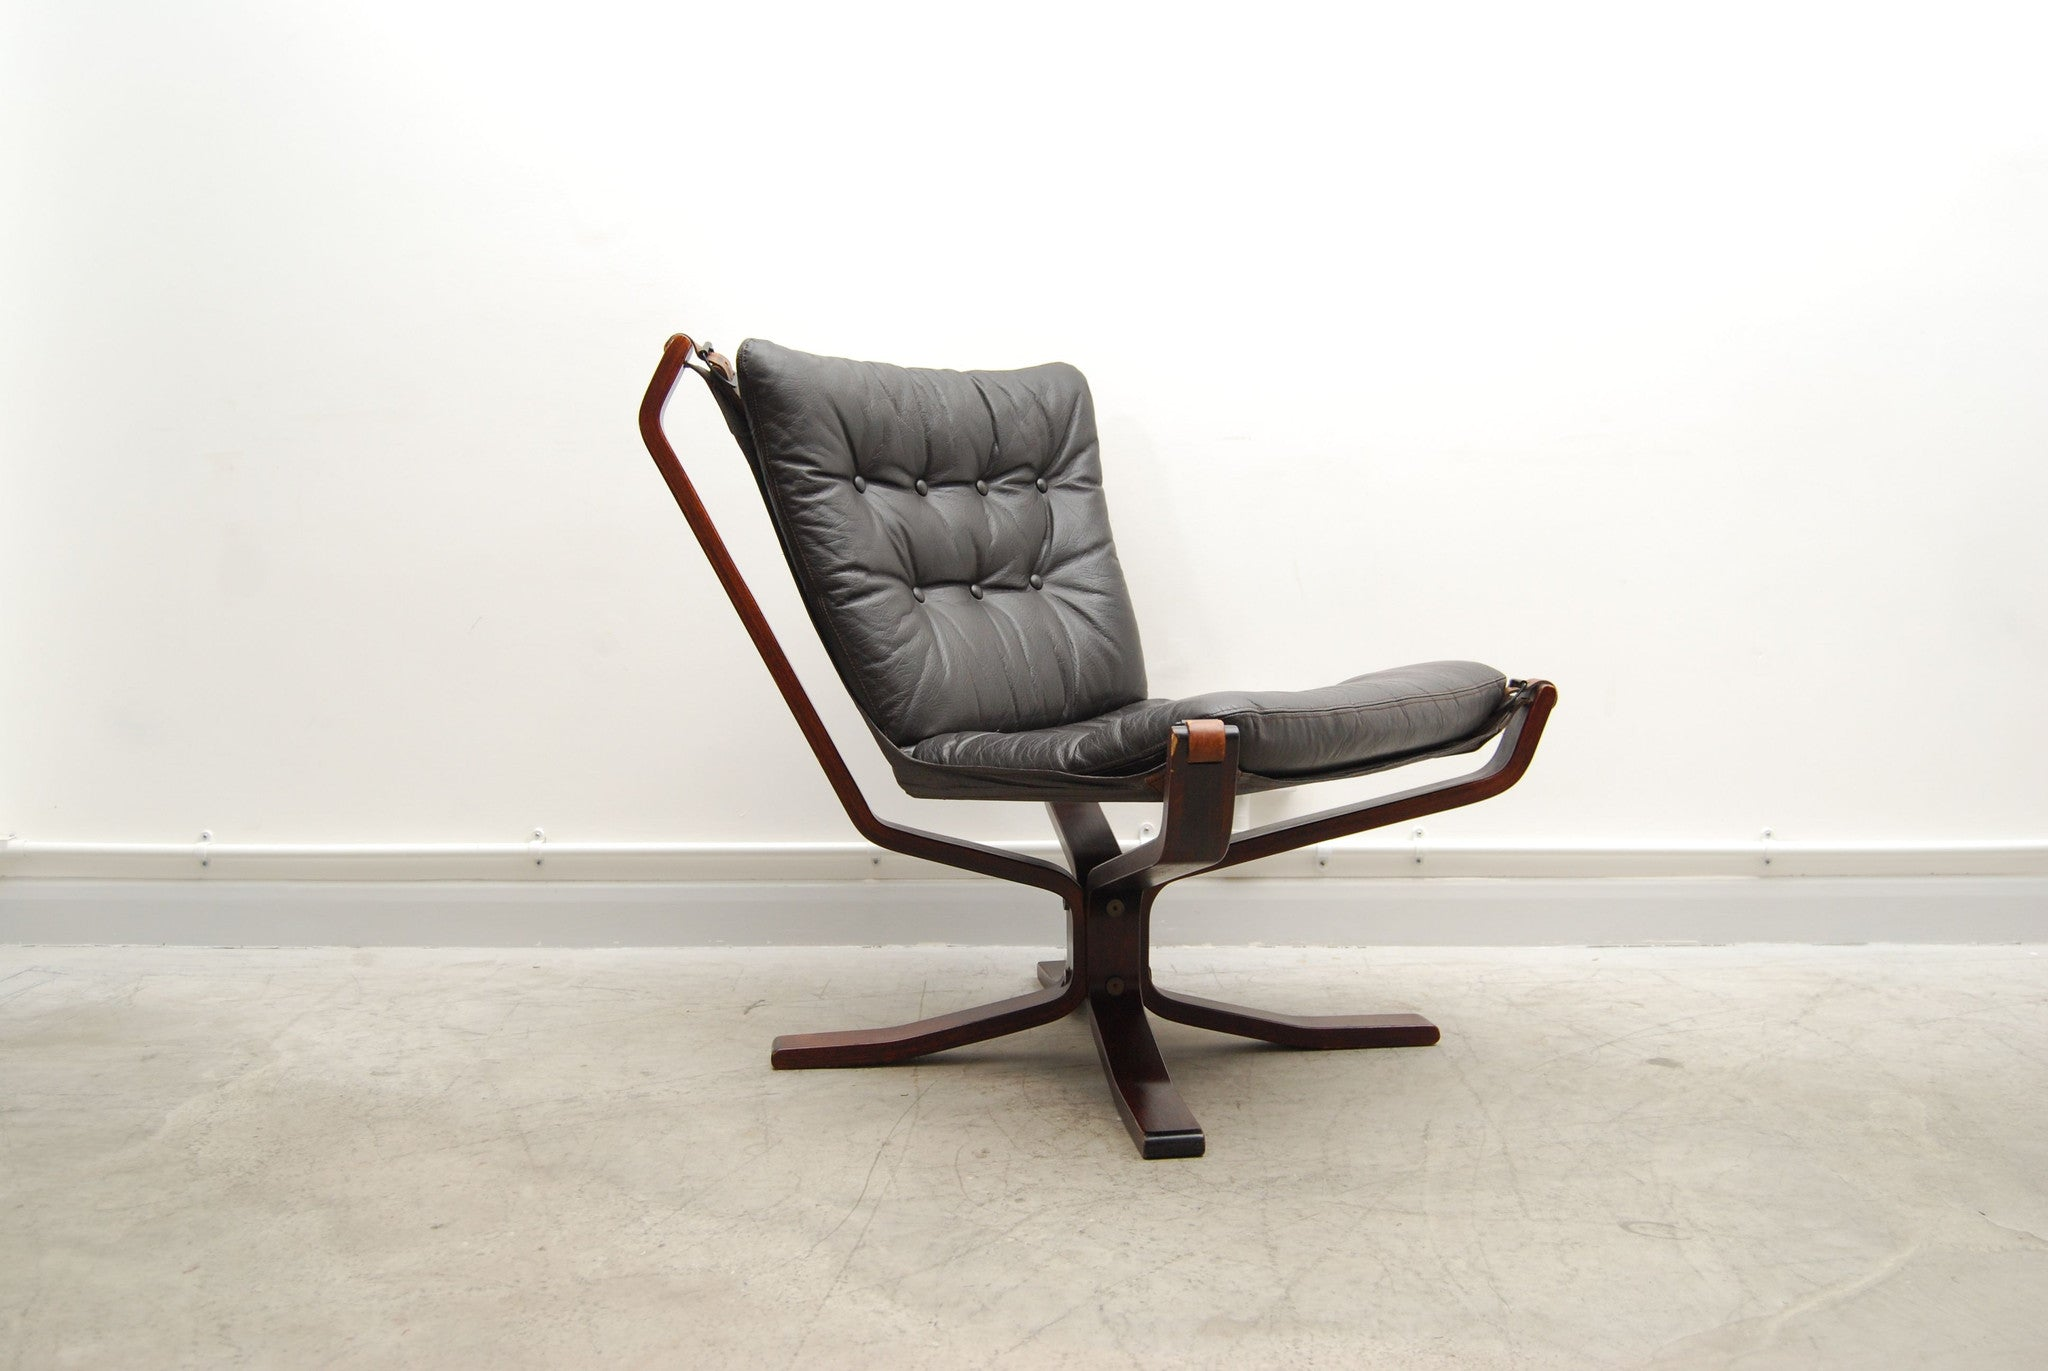 Falcon chair